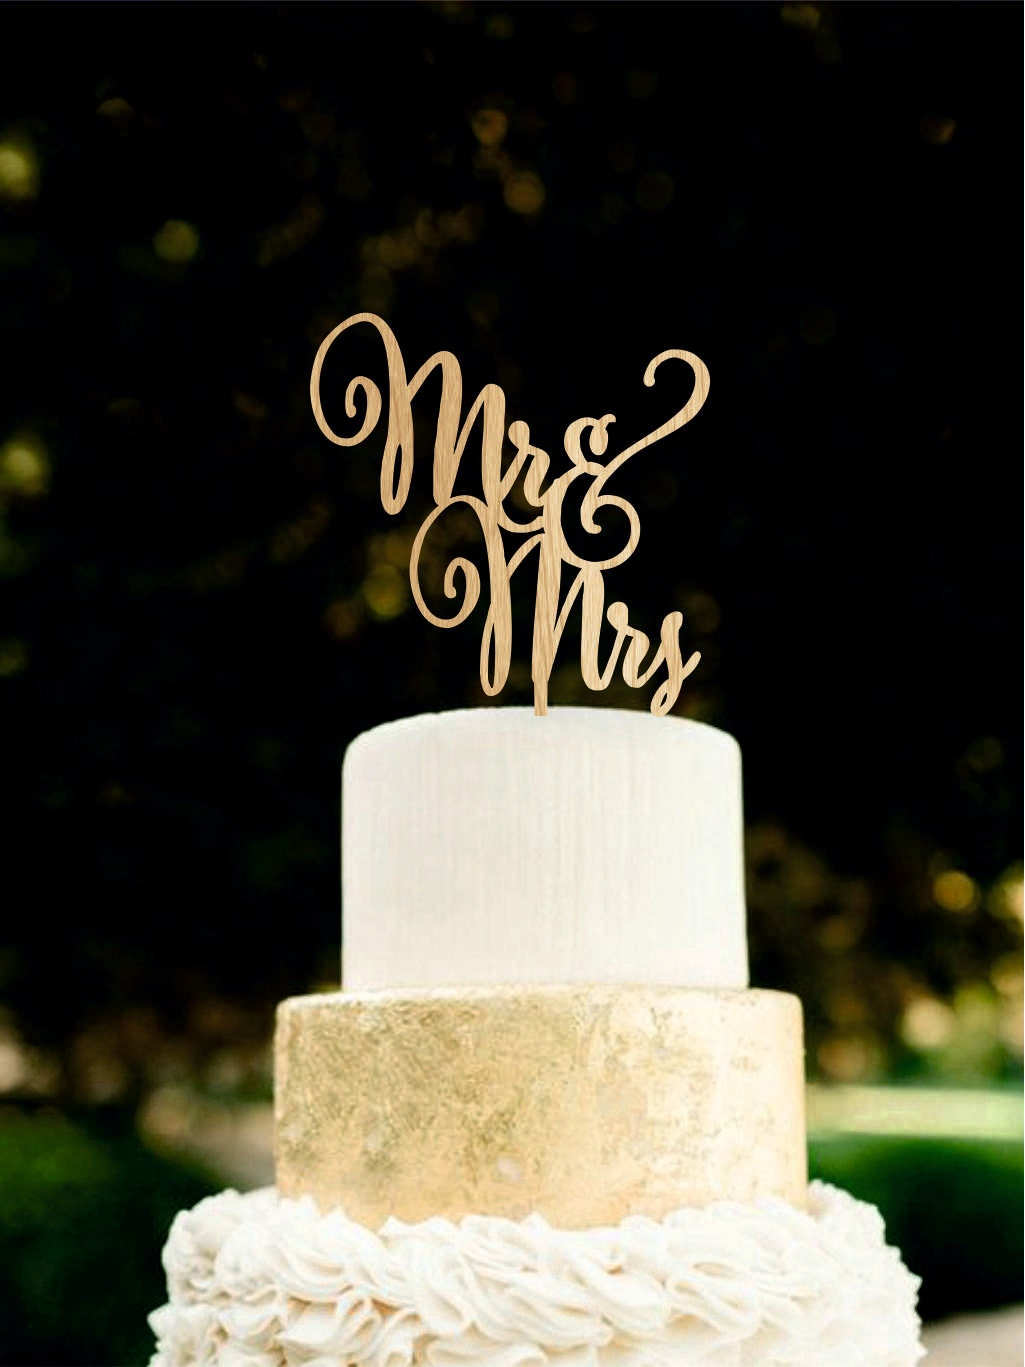 Mr and Mrs wedding cake topper Wooden Cake Topper unique